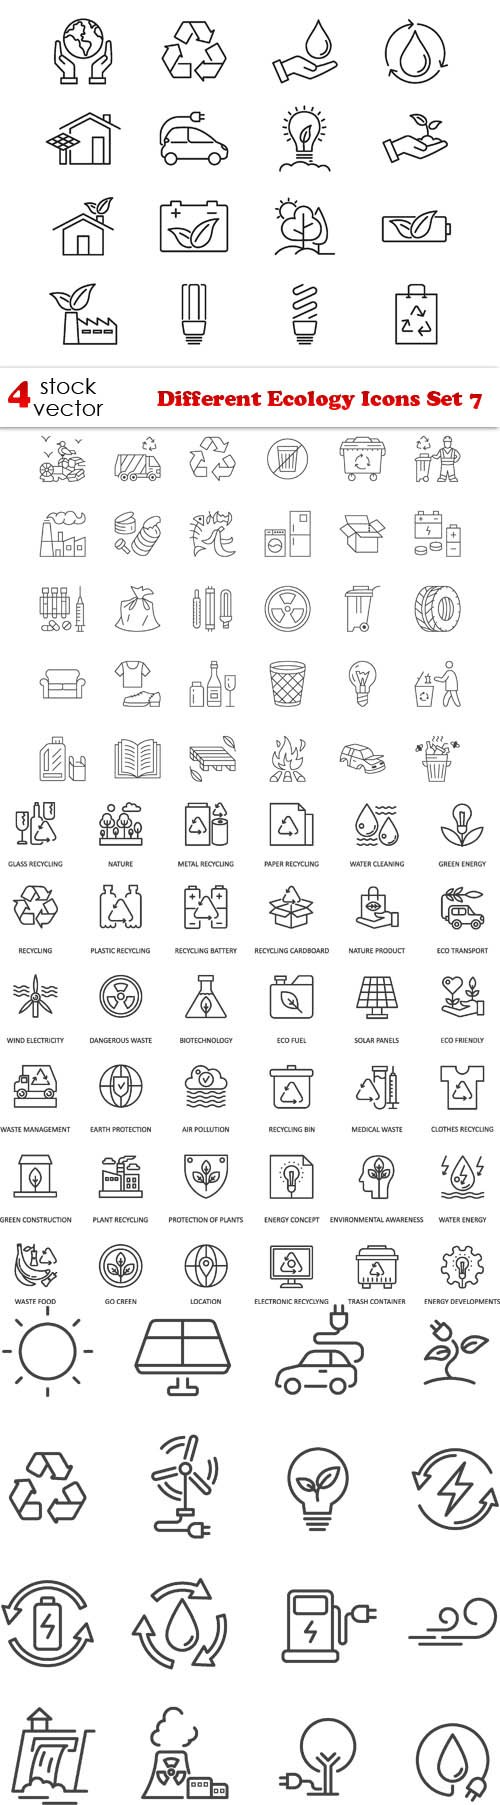 Vectors - Different Ecology Icons Set 7